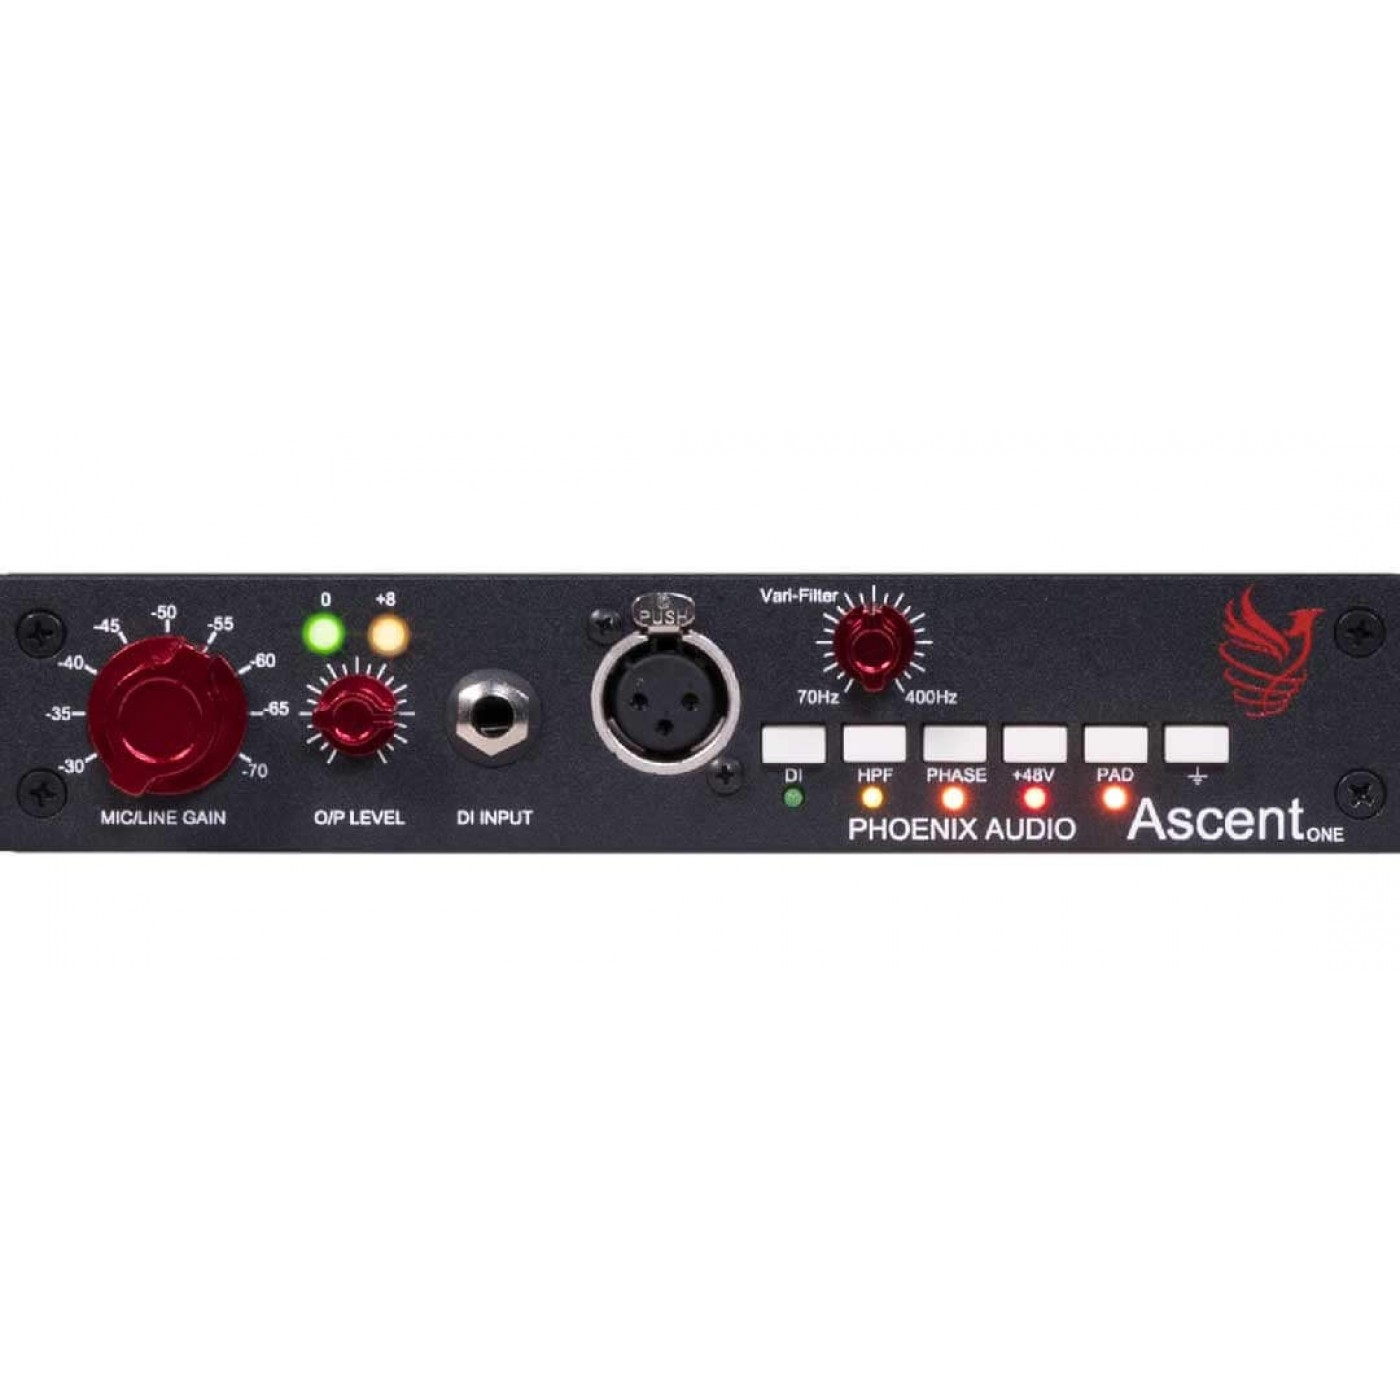 Phoenix Audio ASCENT ONE